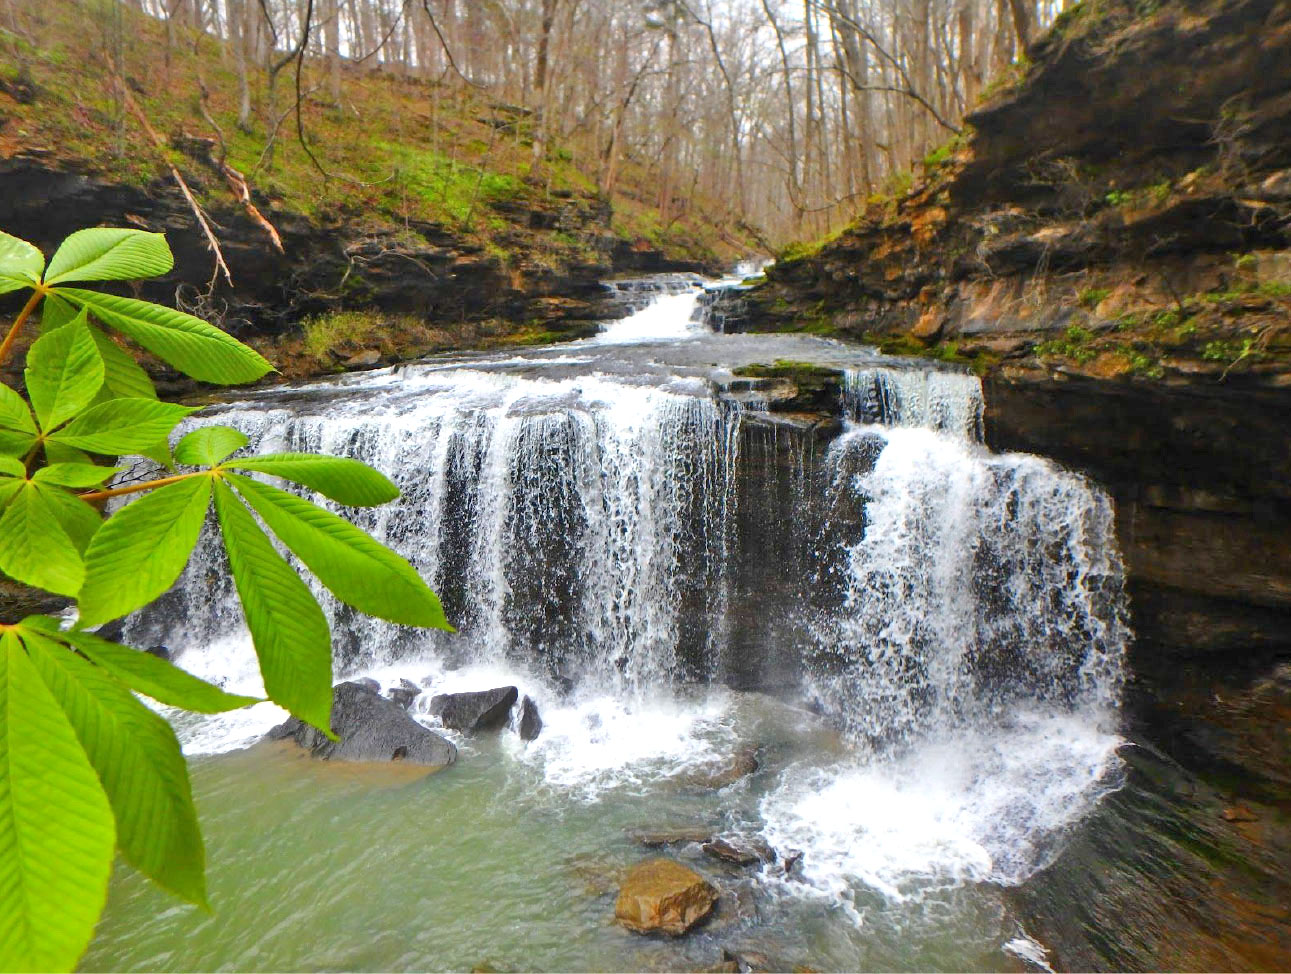 photo of a water fall in the woods